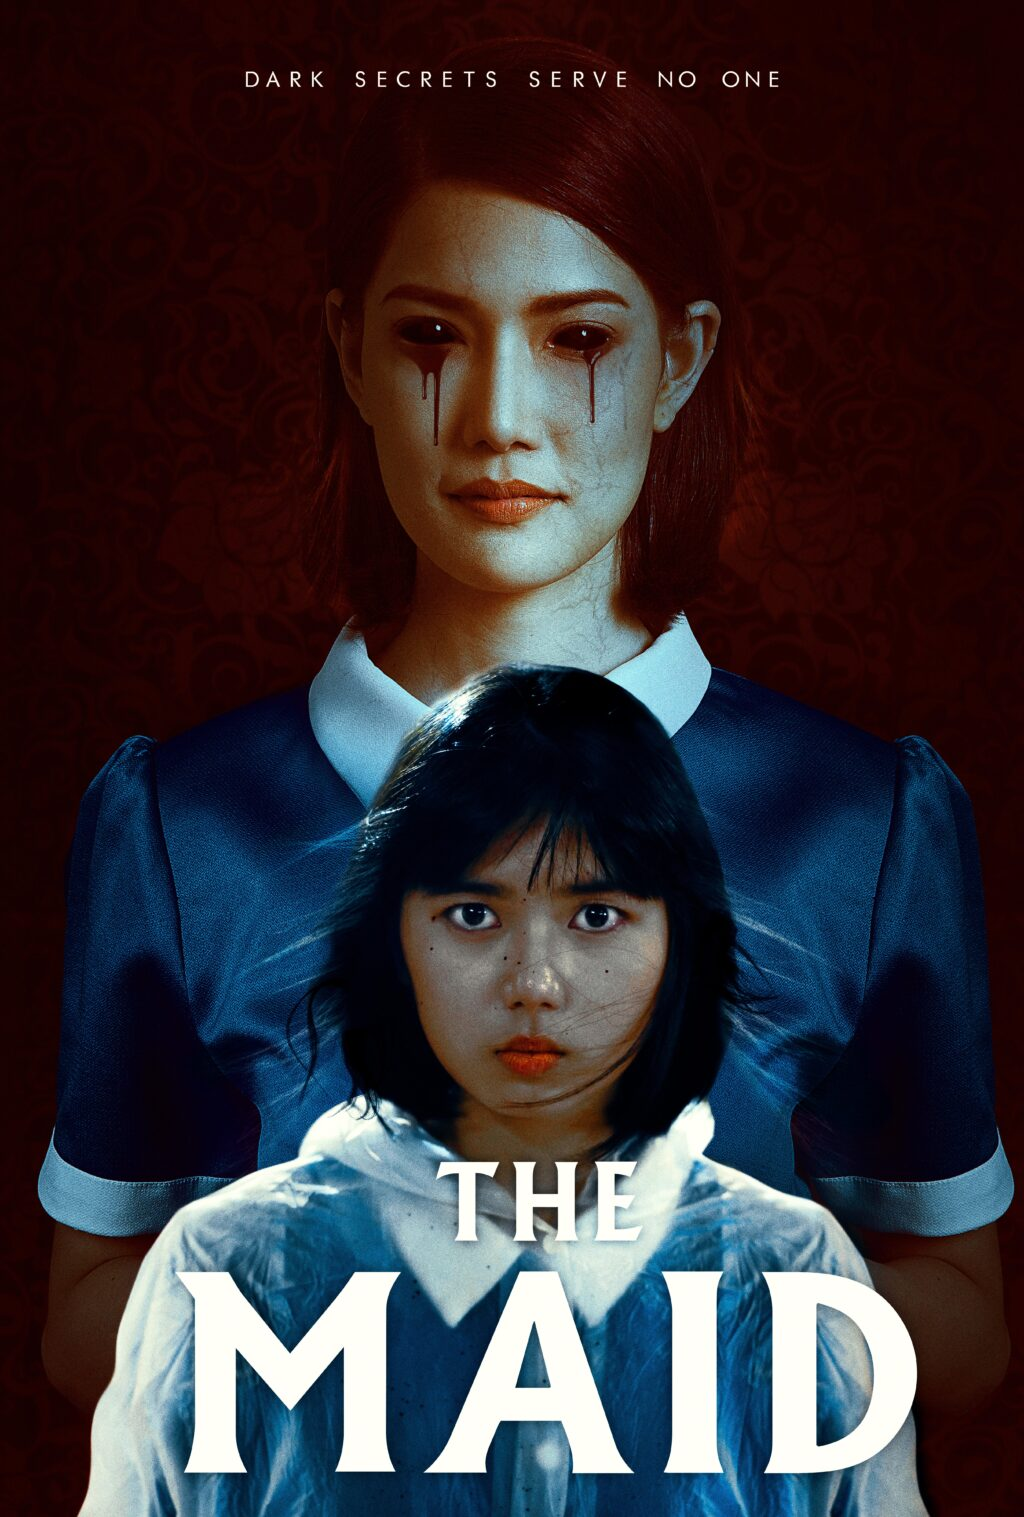 The Maid Red FINAL 2021 1024x1517 - Exclusive: Watch 2 New Terrifying Clips from THE MAID Now Streaming!